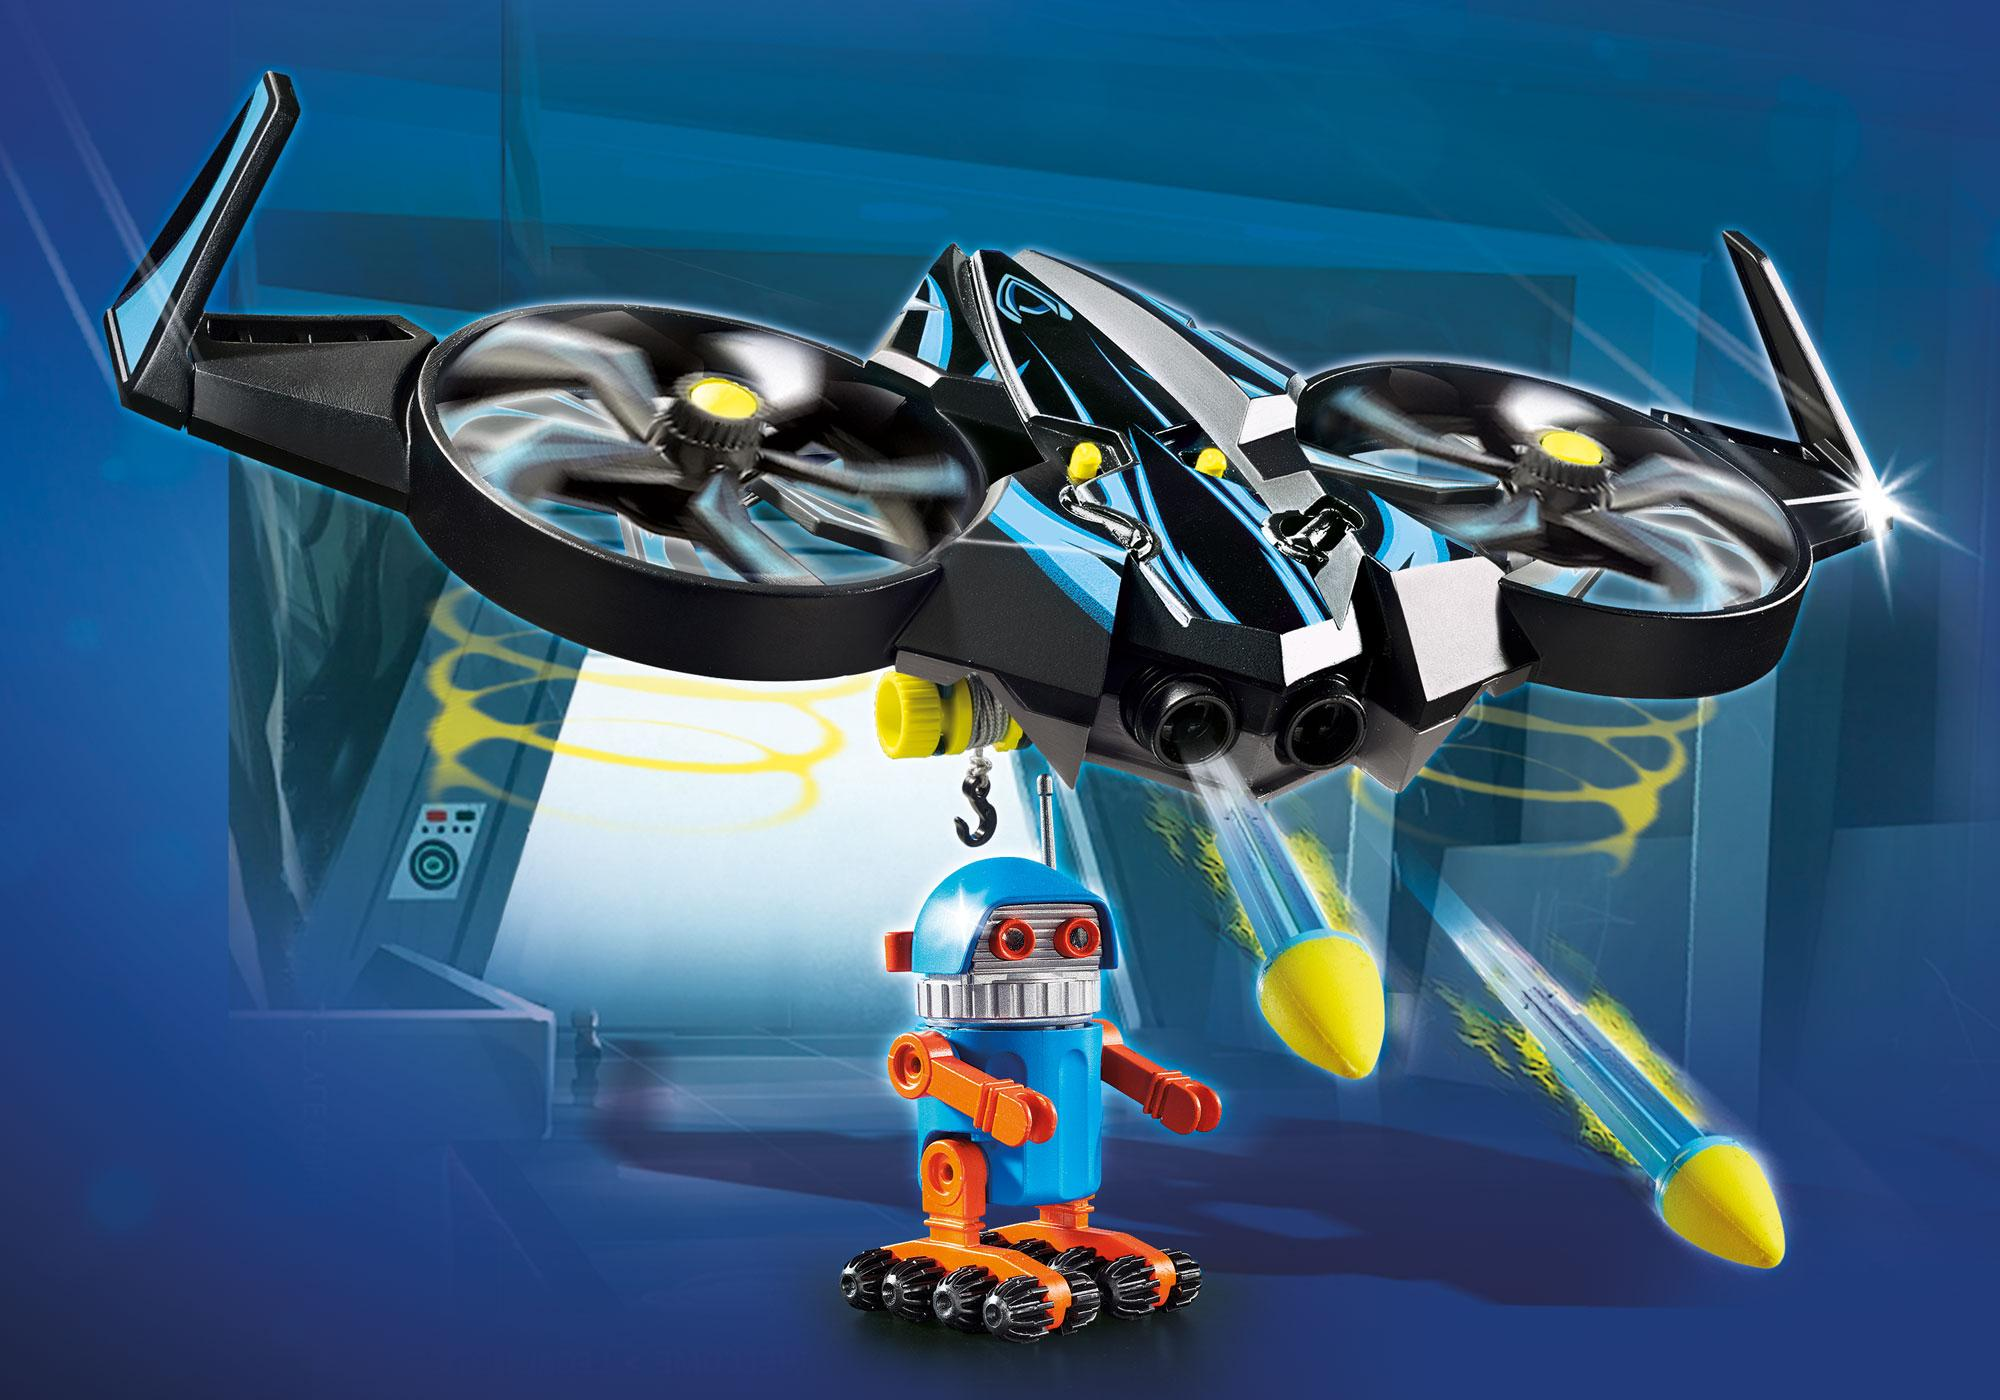 70071_product_detail/PLAYMOBIL:THE MOVIE Robotitron mit Drohne